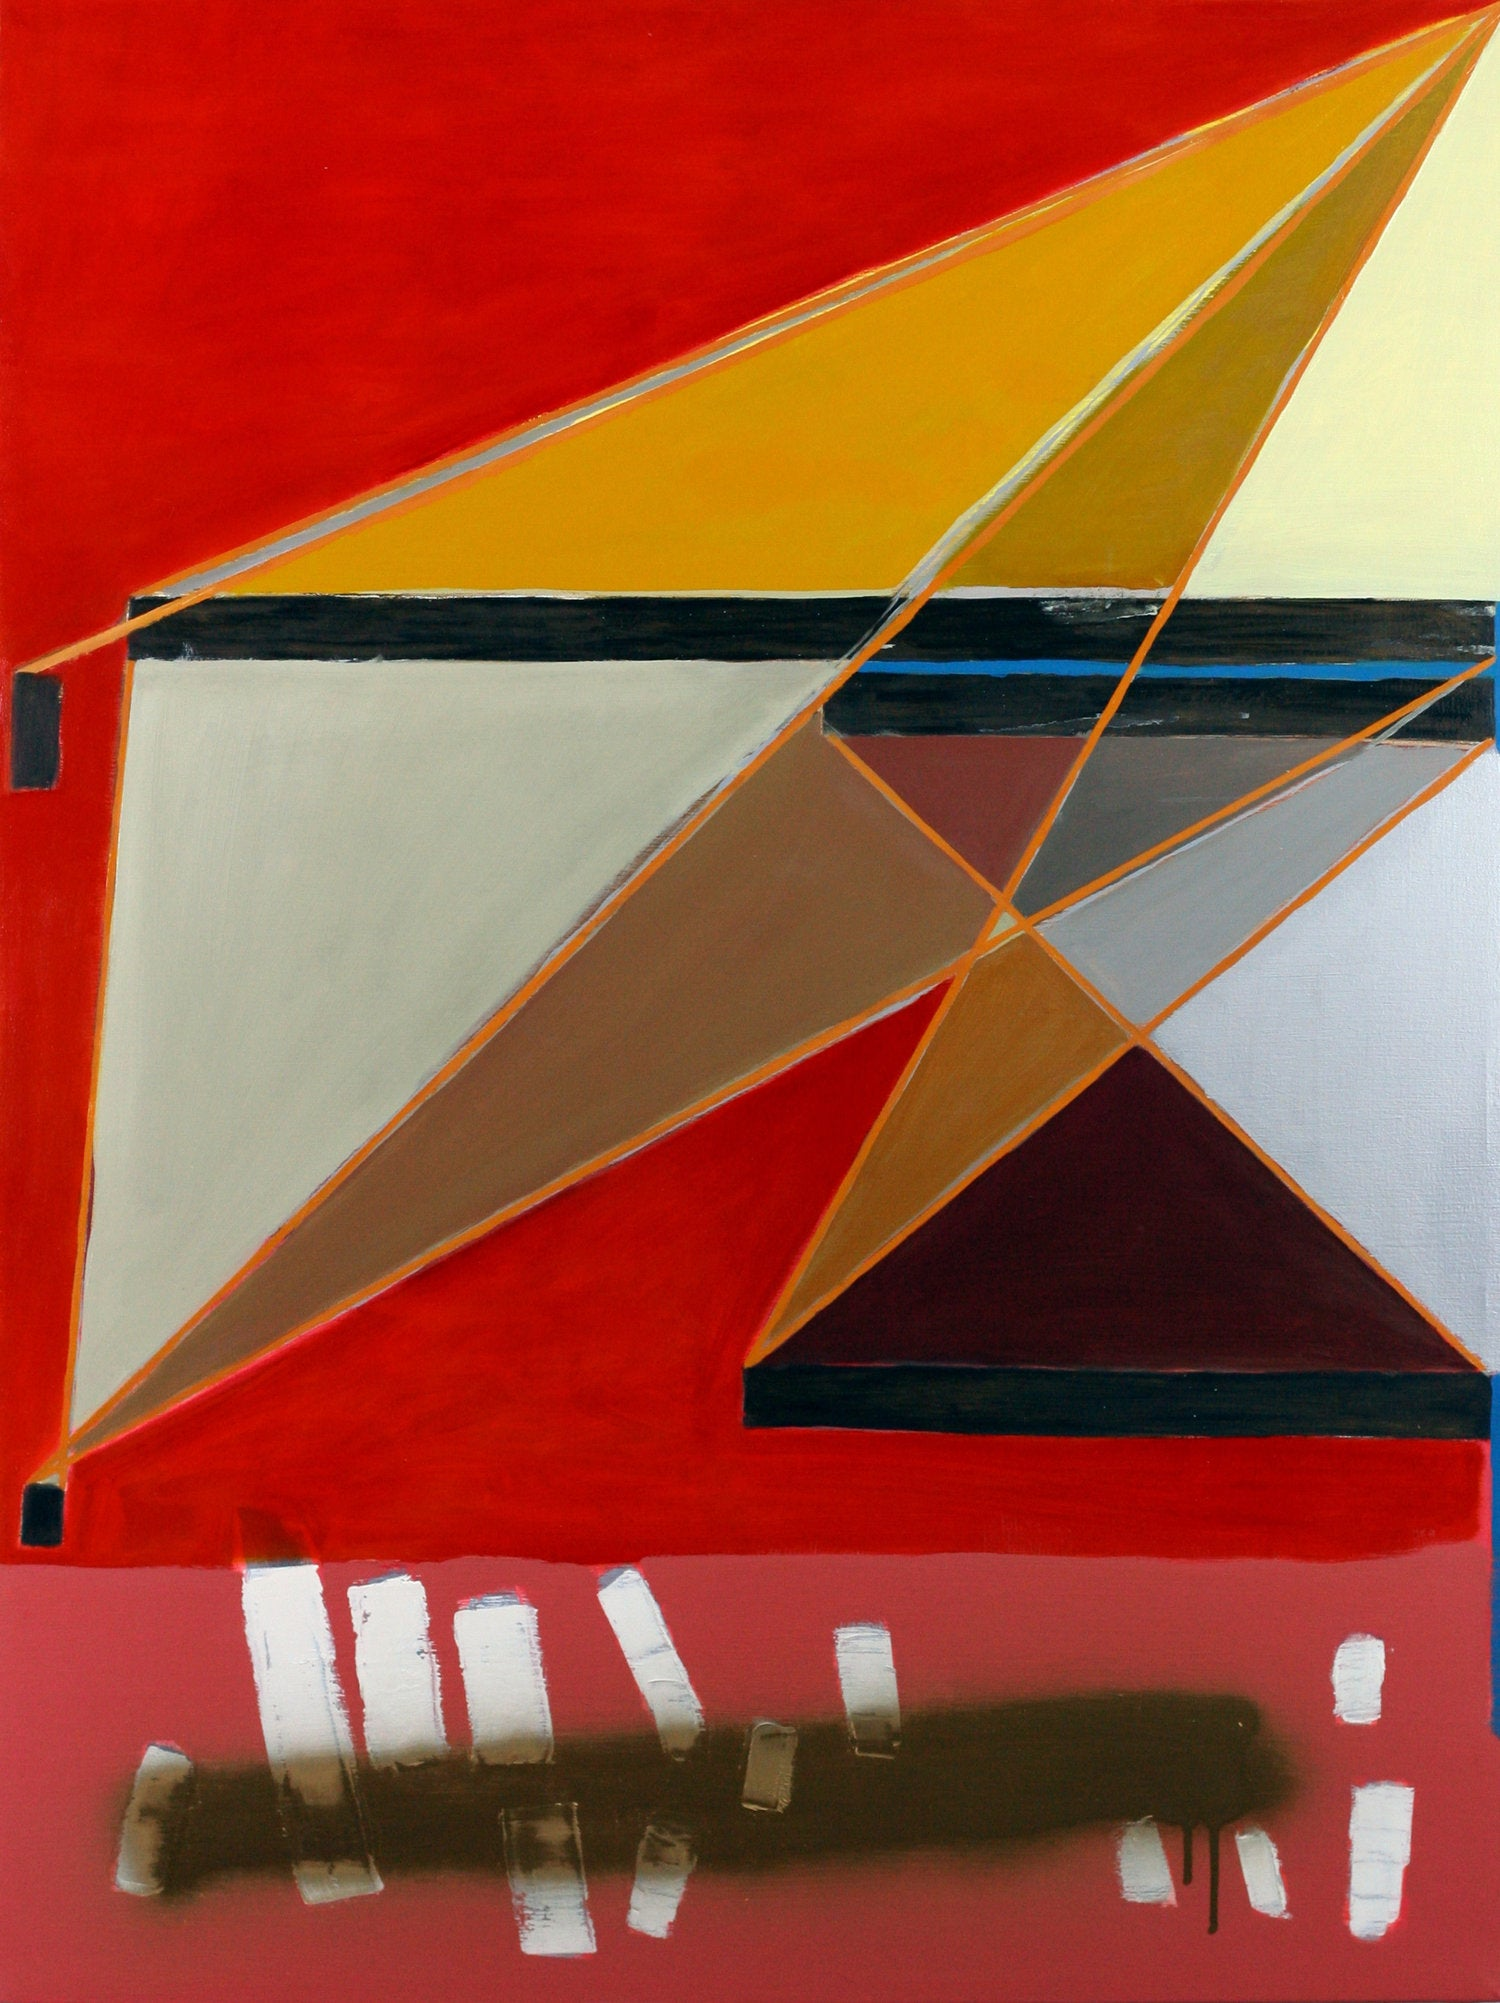 He was beautiful without ever having spoken a word - red, geometric - Abstract